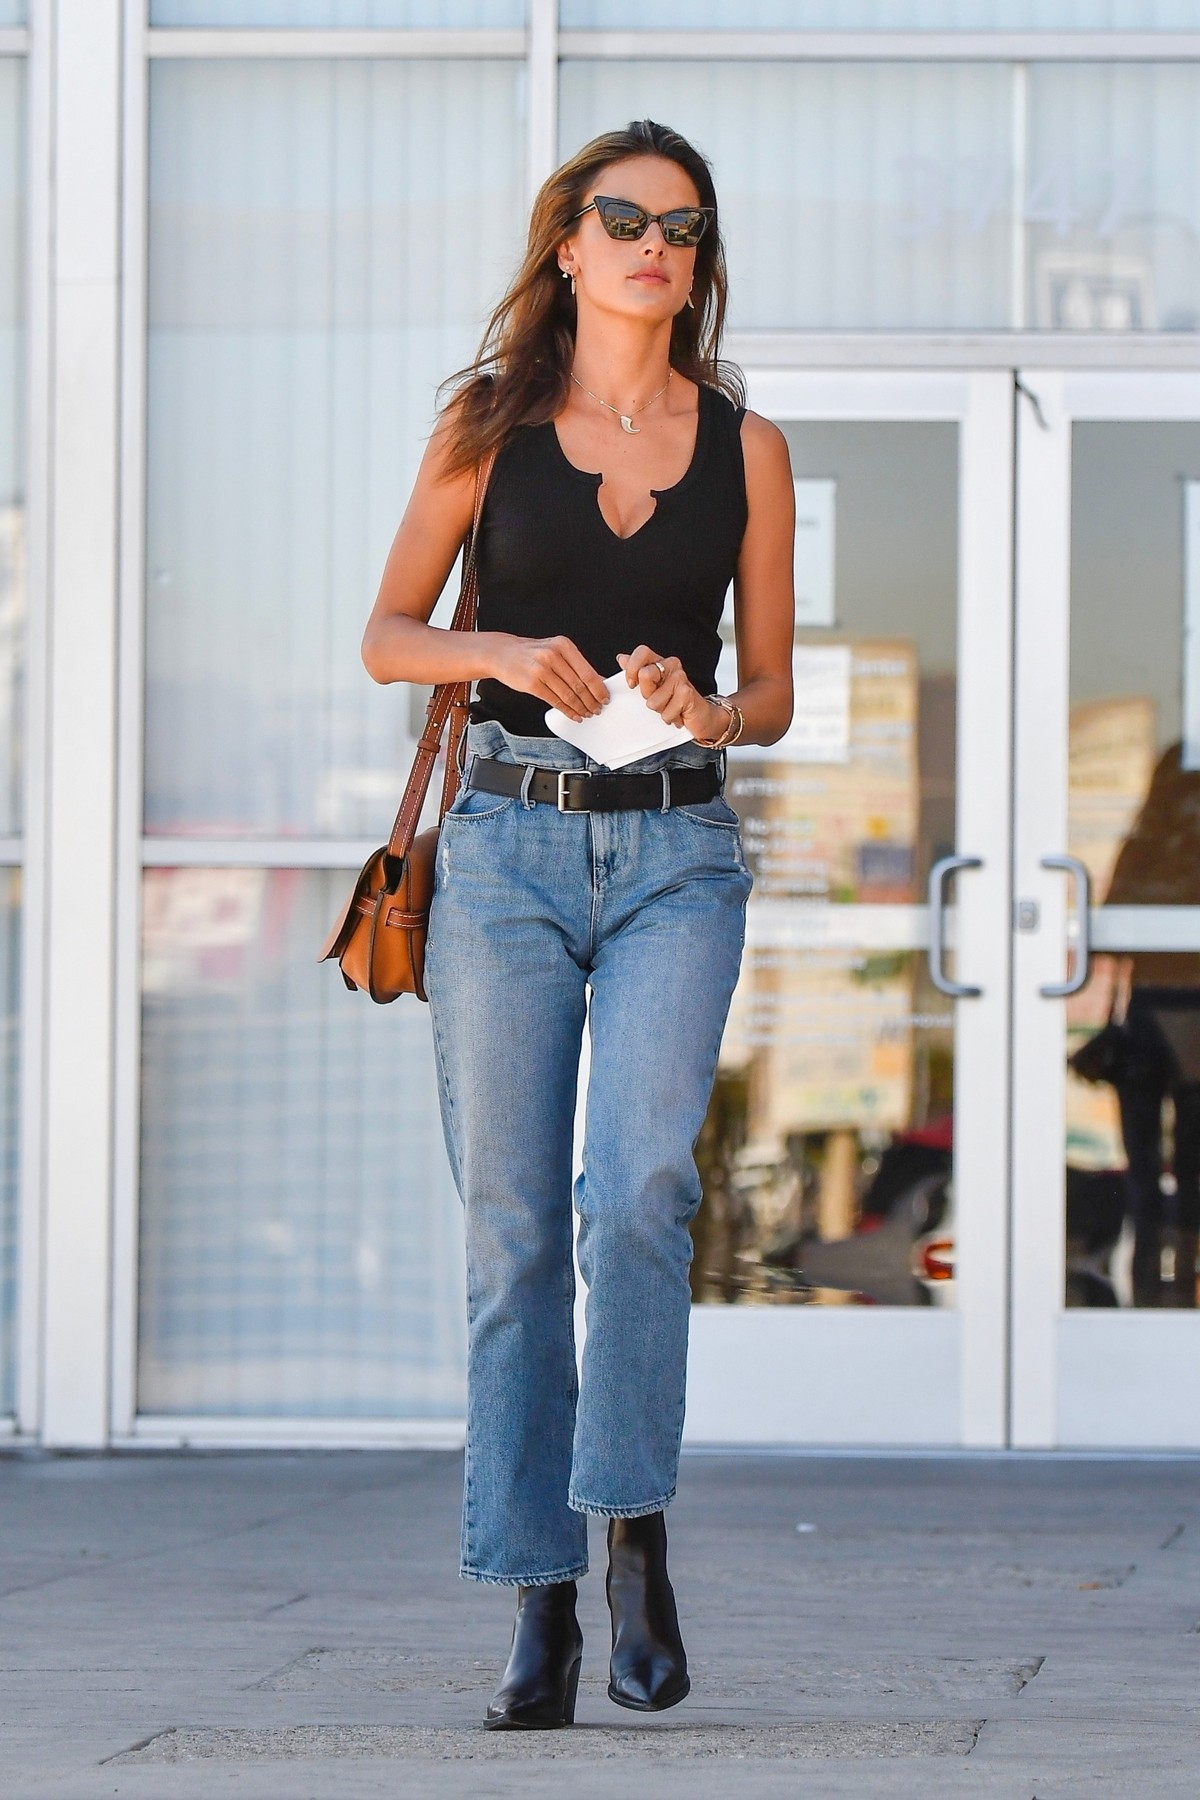 Alessandra Ambrosio in Black Top and Blue Jeans out in Los Angeles 2019/11/18 14